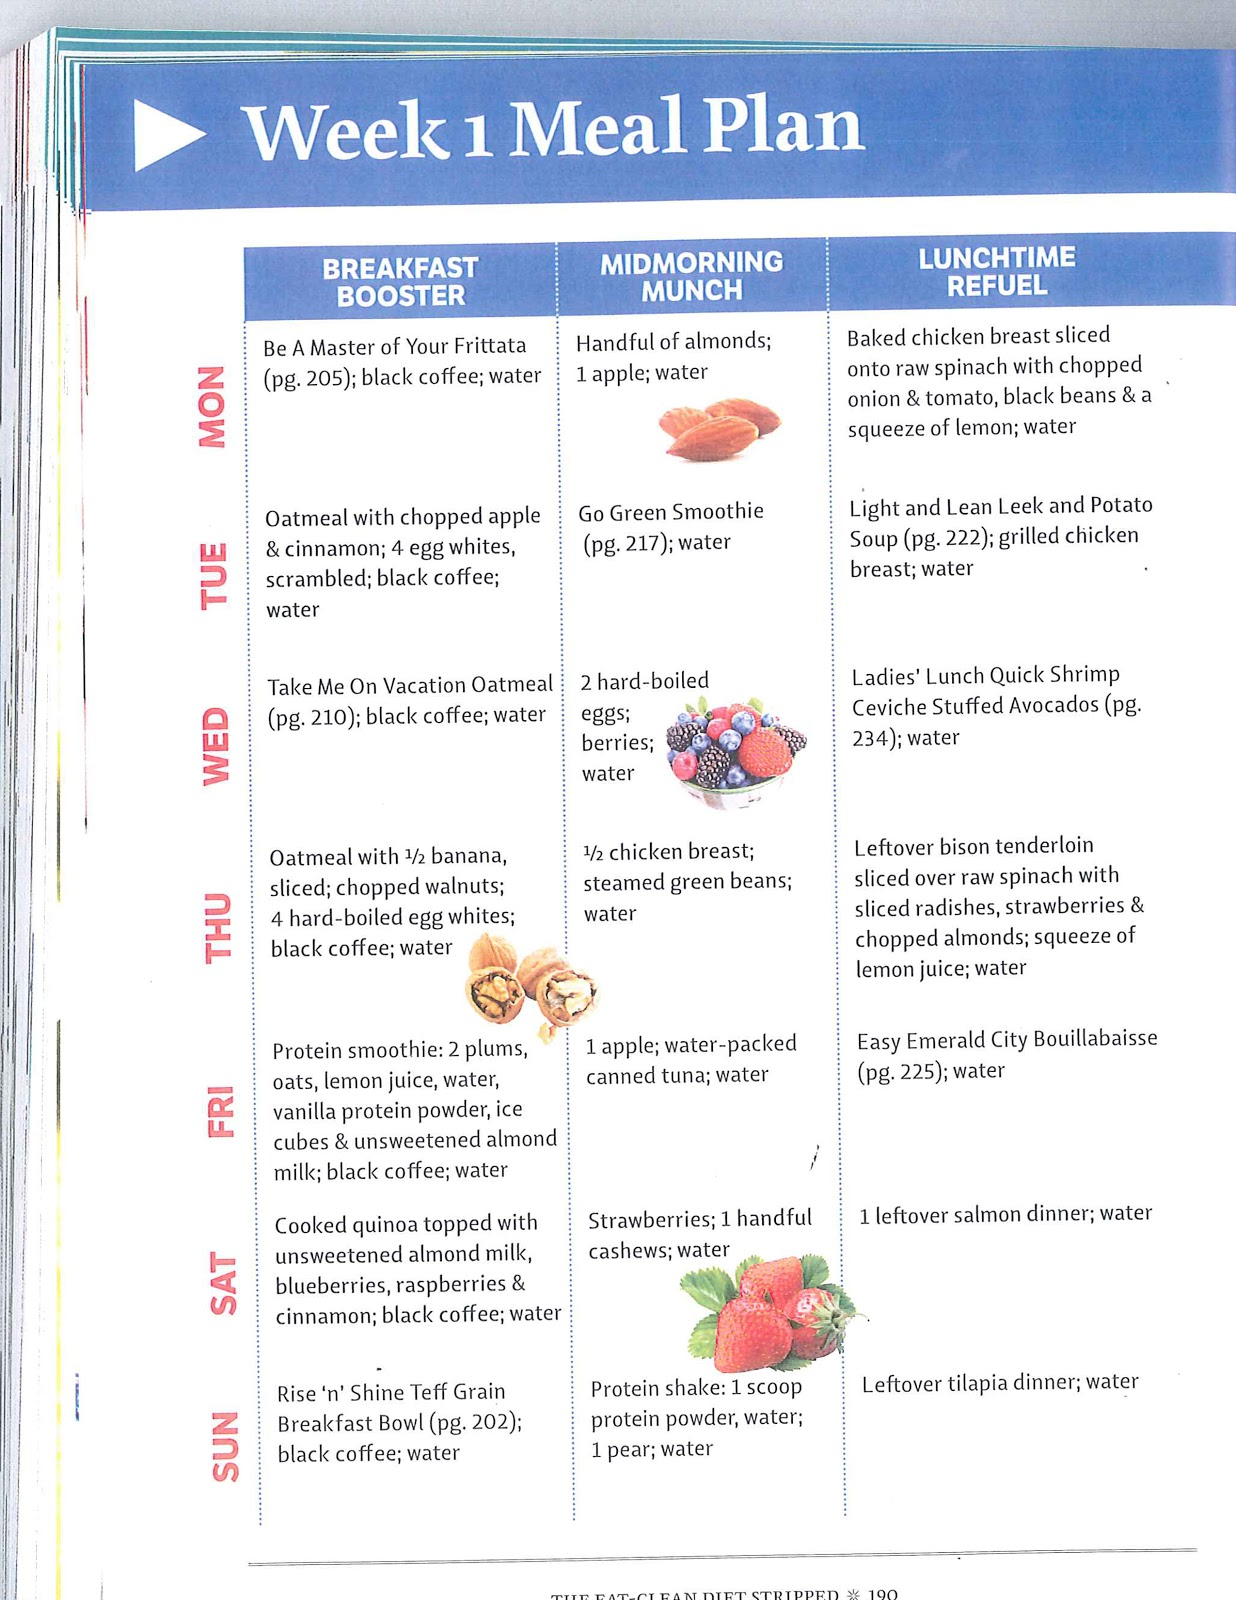 Dear Cankles,: Eat-Clean Diet Stripped - My weekly meal plan